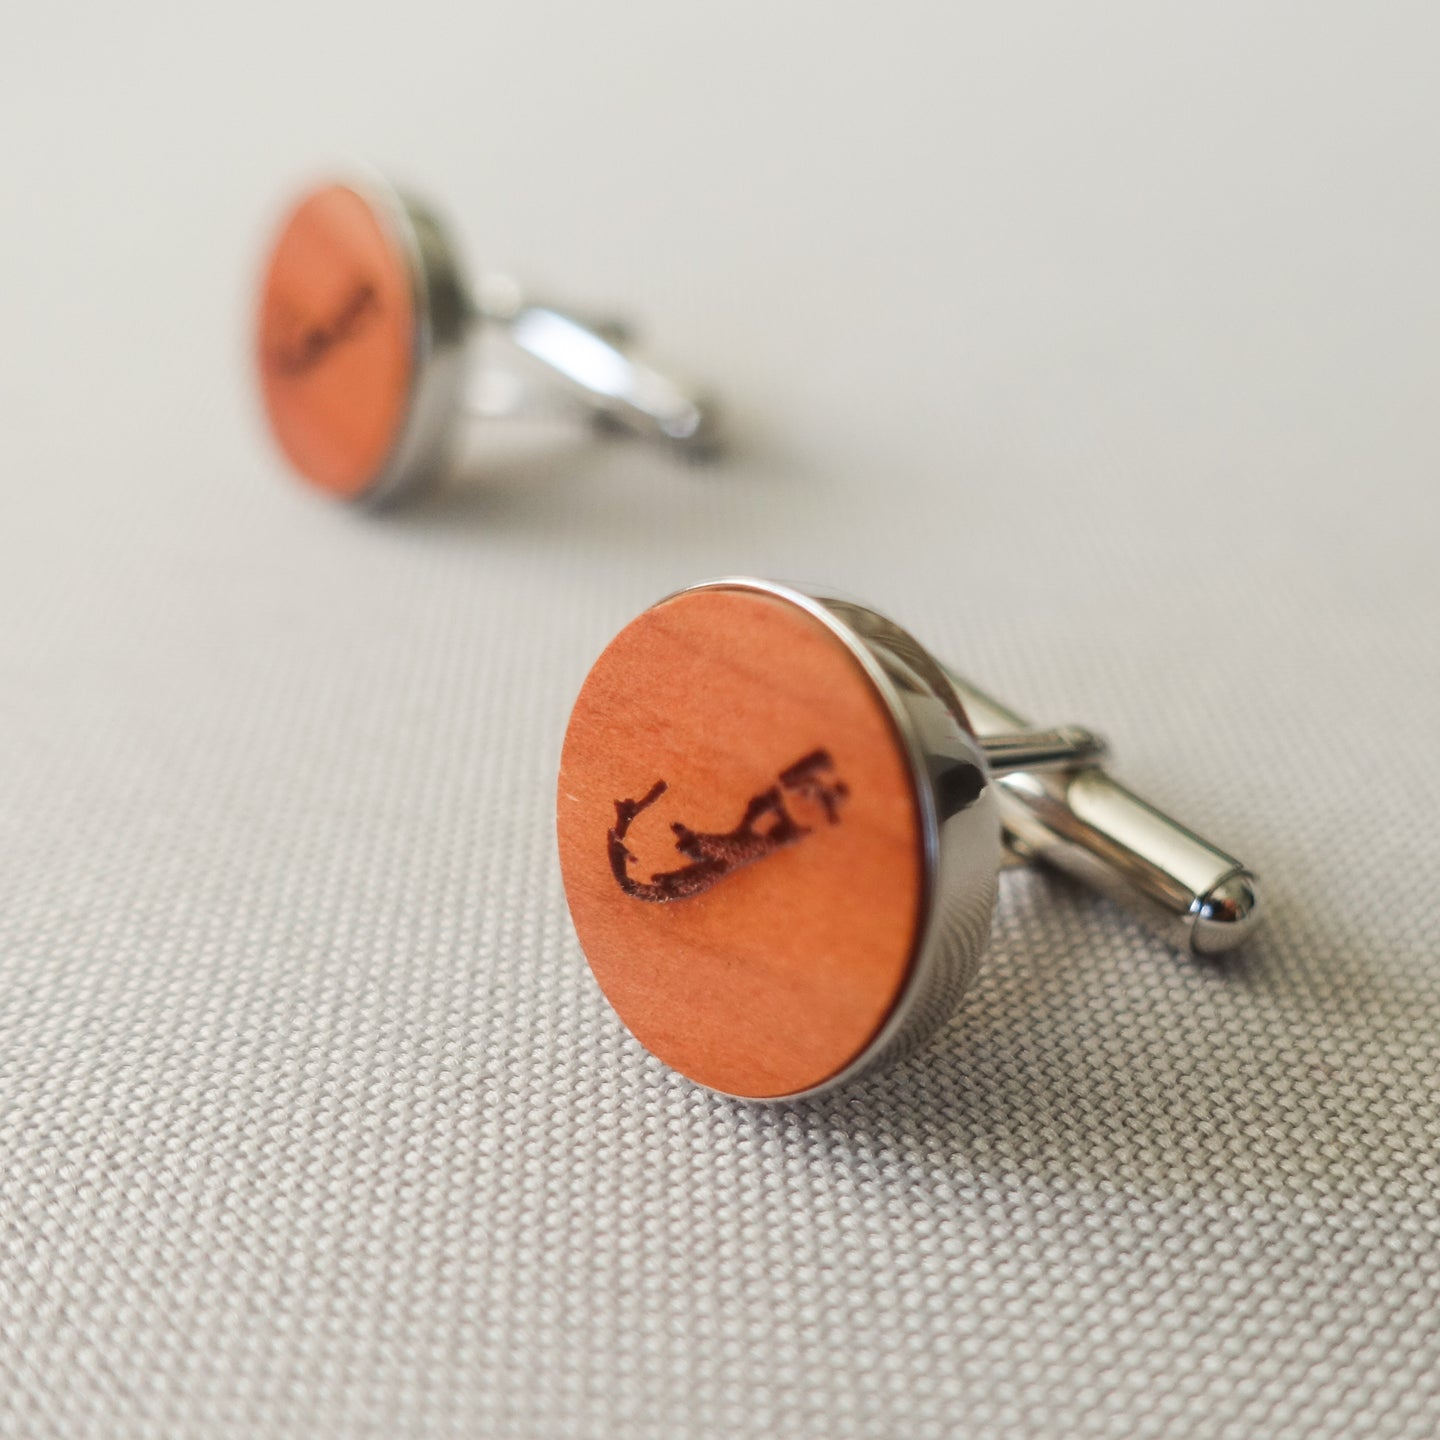 Bermuda Map Cufflinks